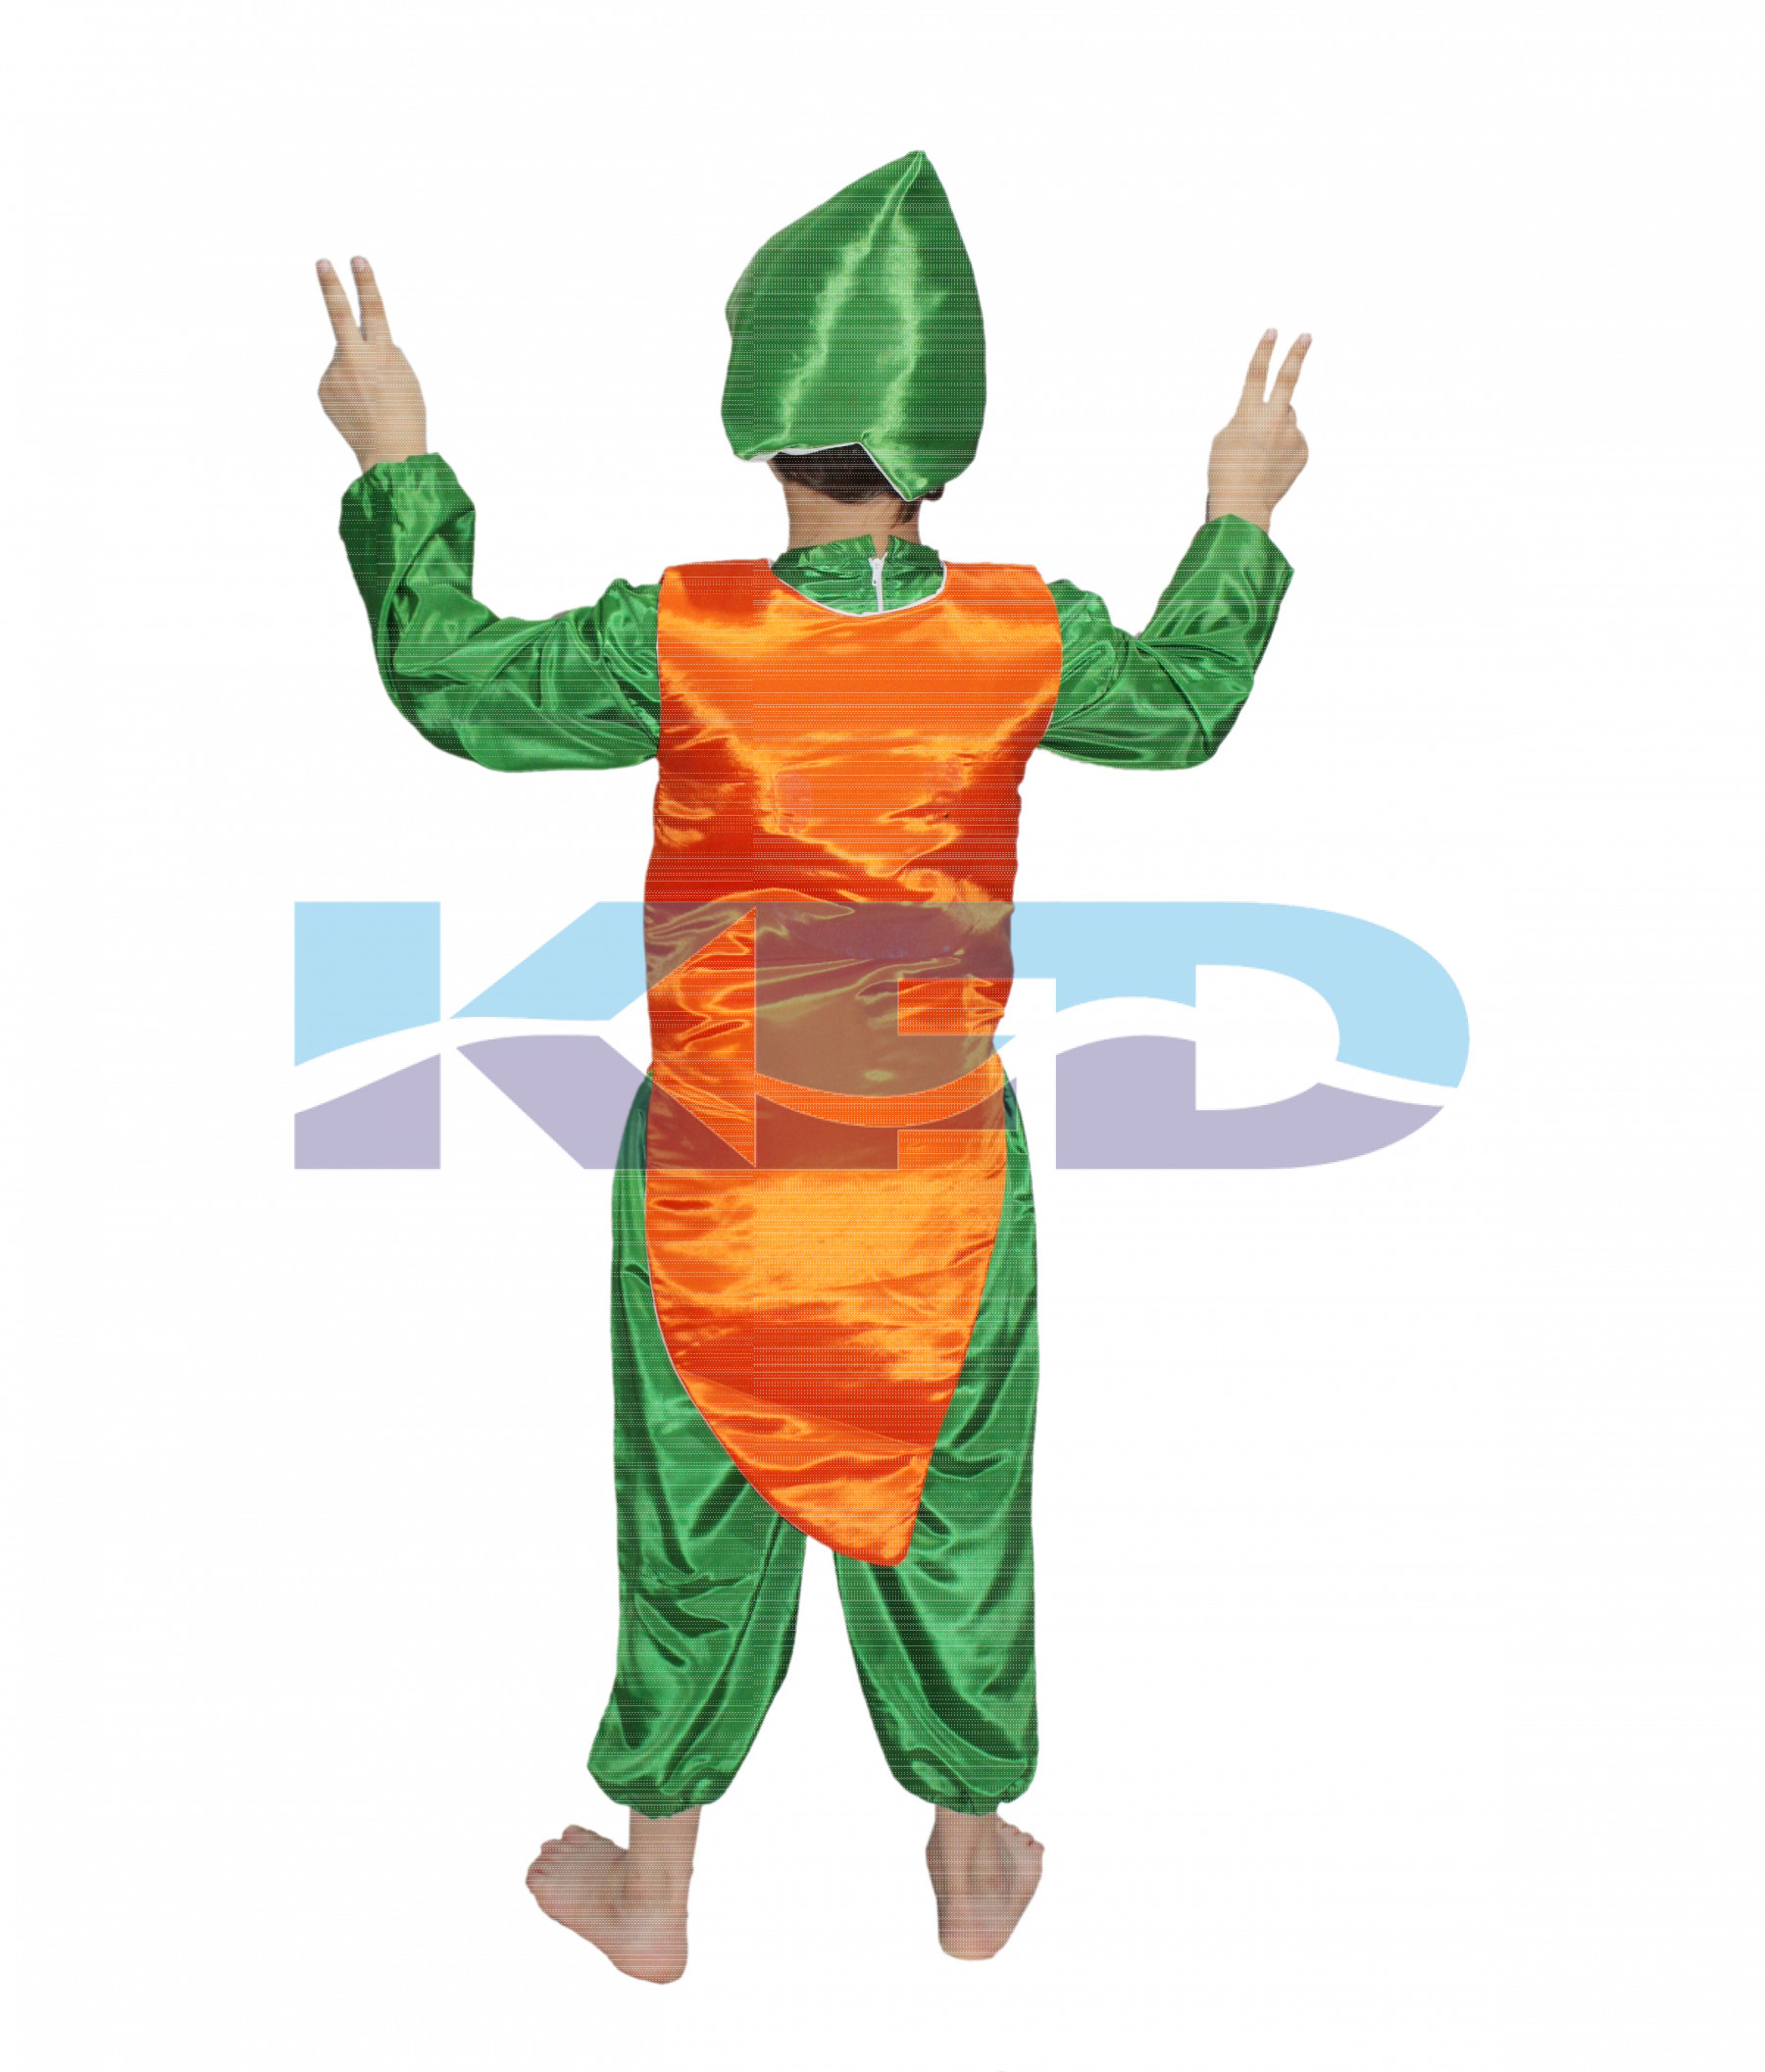 a20ca1c710db Carrot fancy dress for kids,Fruits Costume for School Annual ...